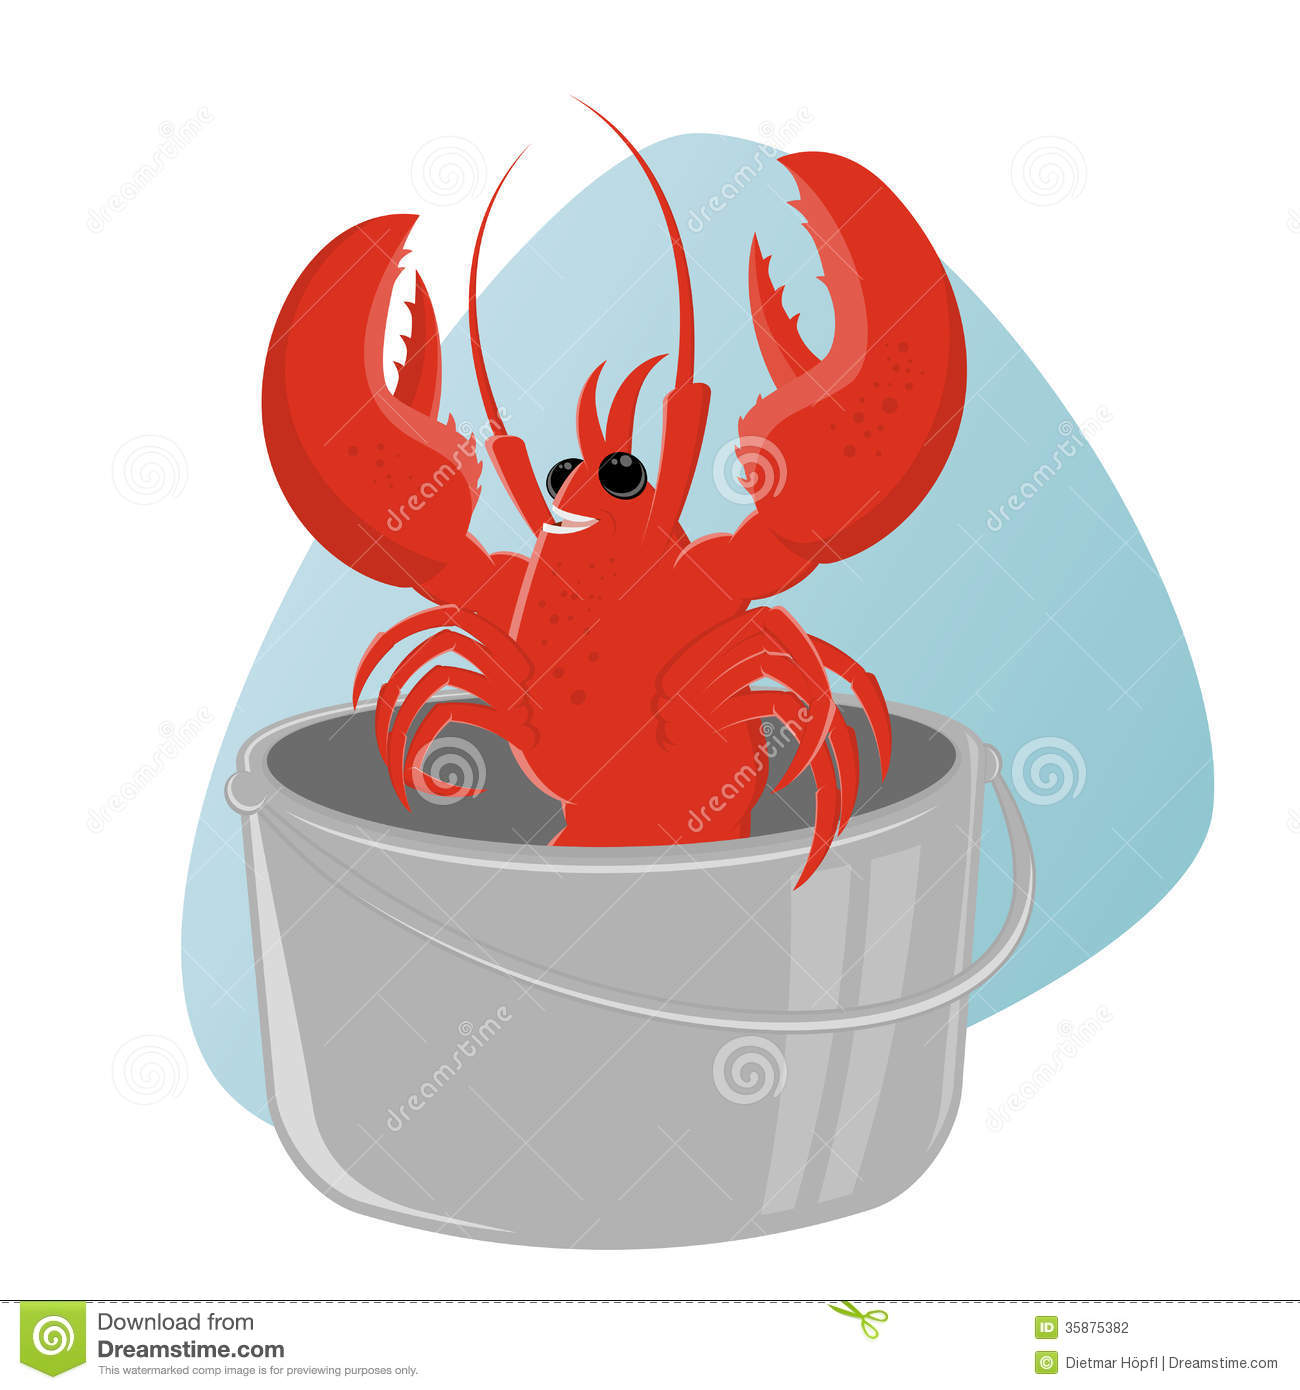 funny lobster clipart - photo #20